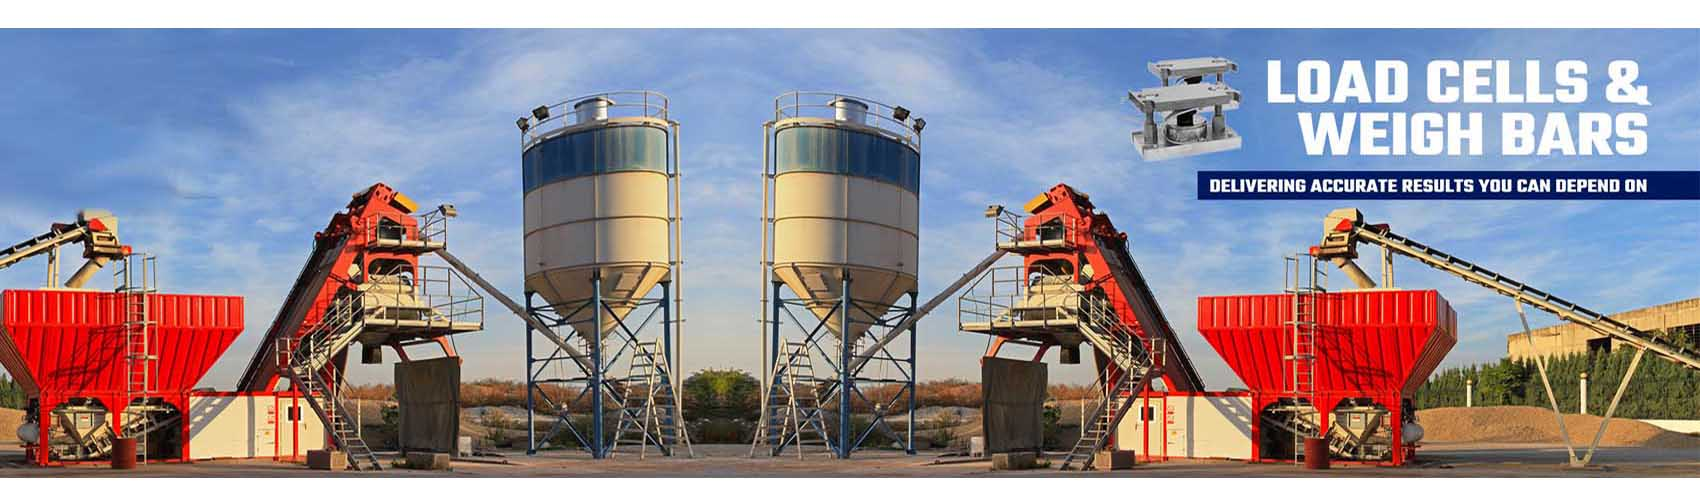 Industrial Weighing Scales Technology in Bahrain